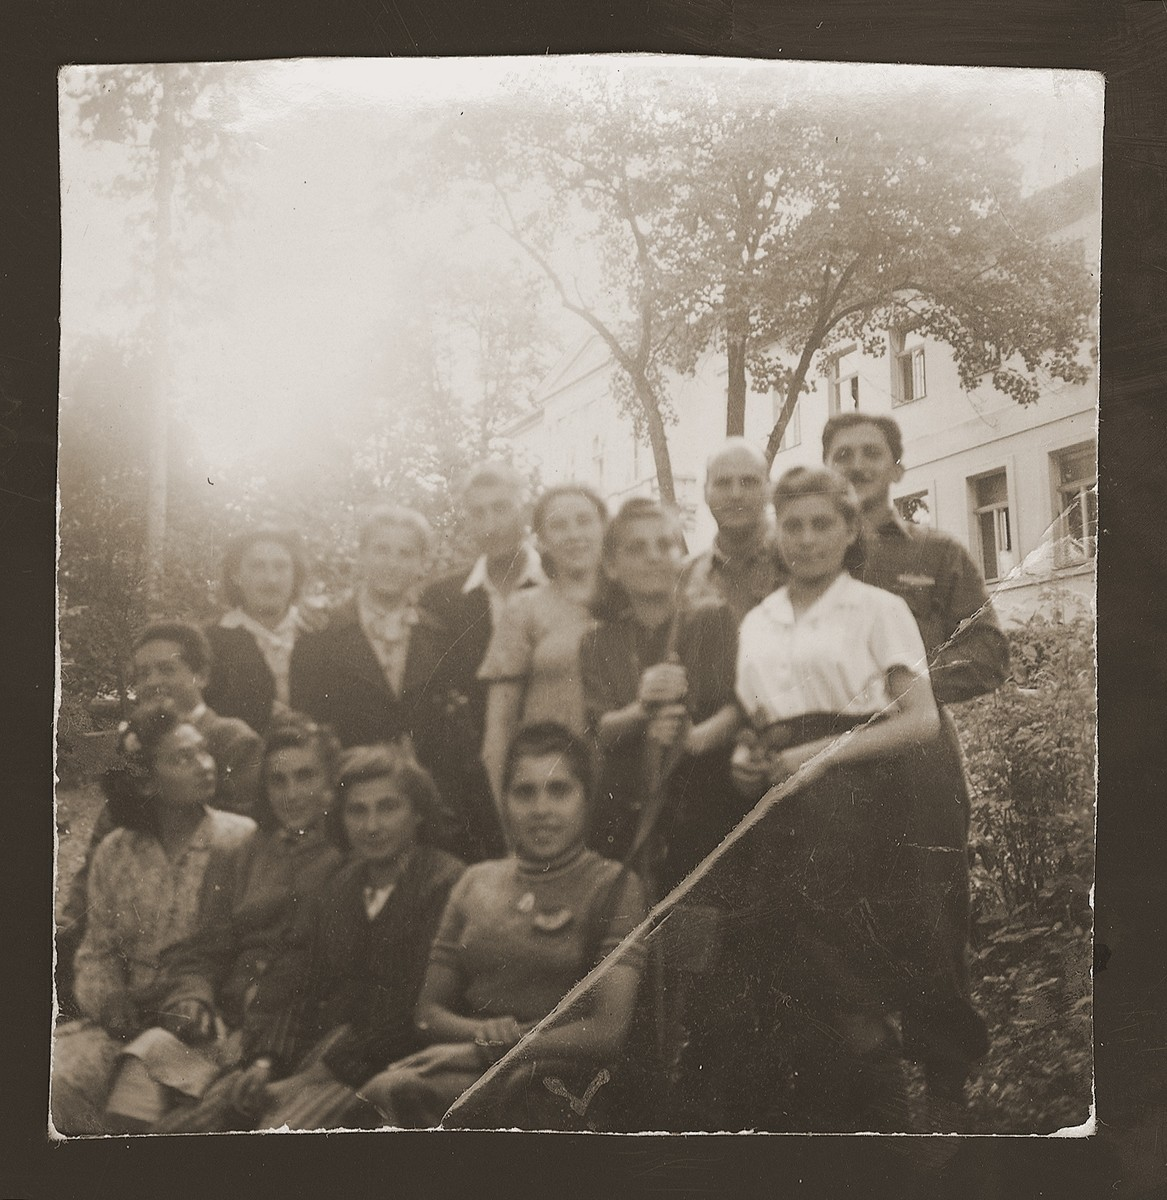 Group portrait of young Jewish women, survivors of the death march to Volary.    Among those pictured is Moniek Rozen (standing third from the left).